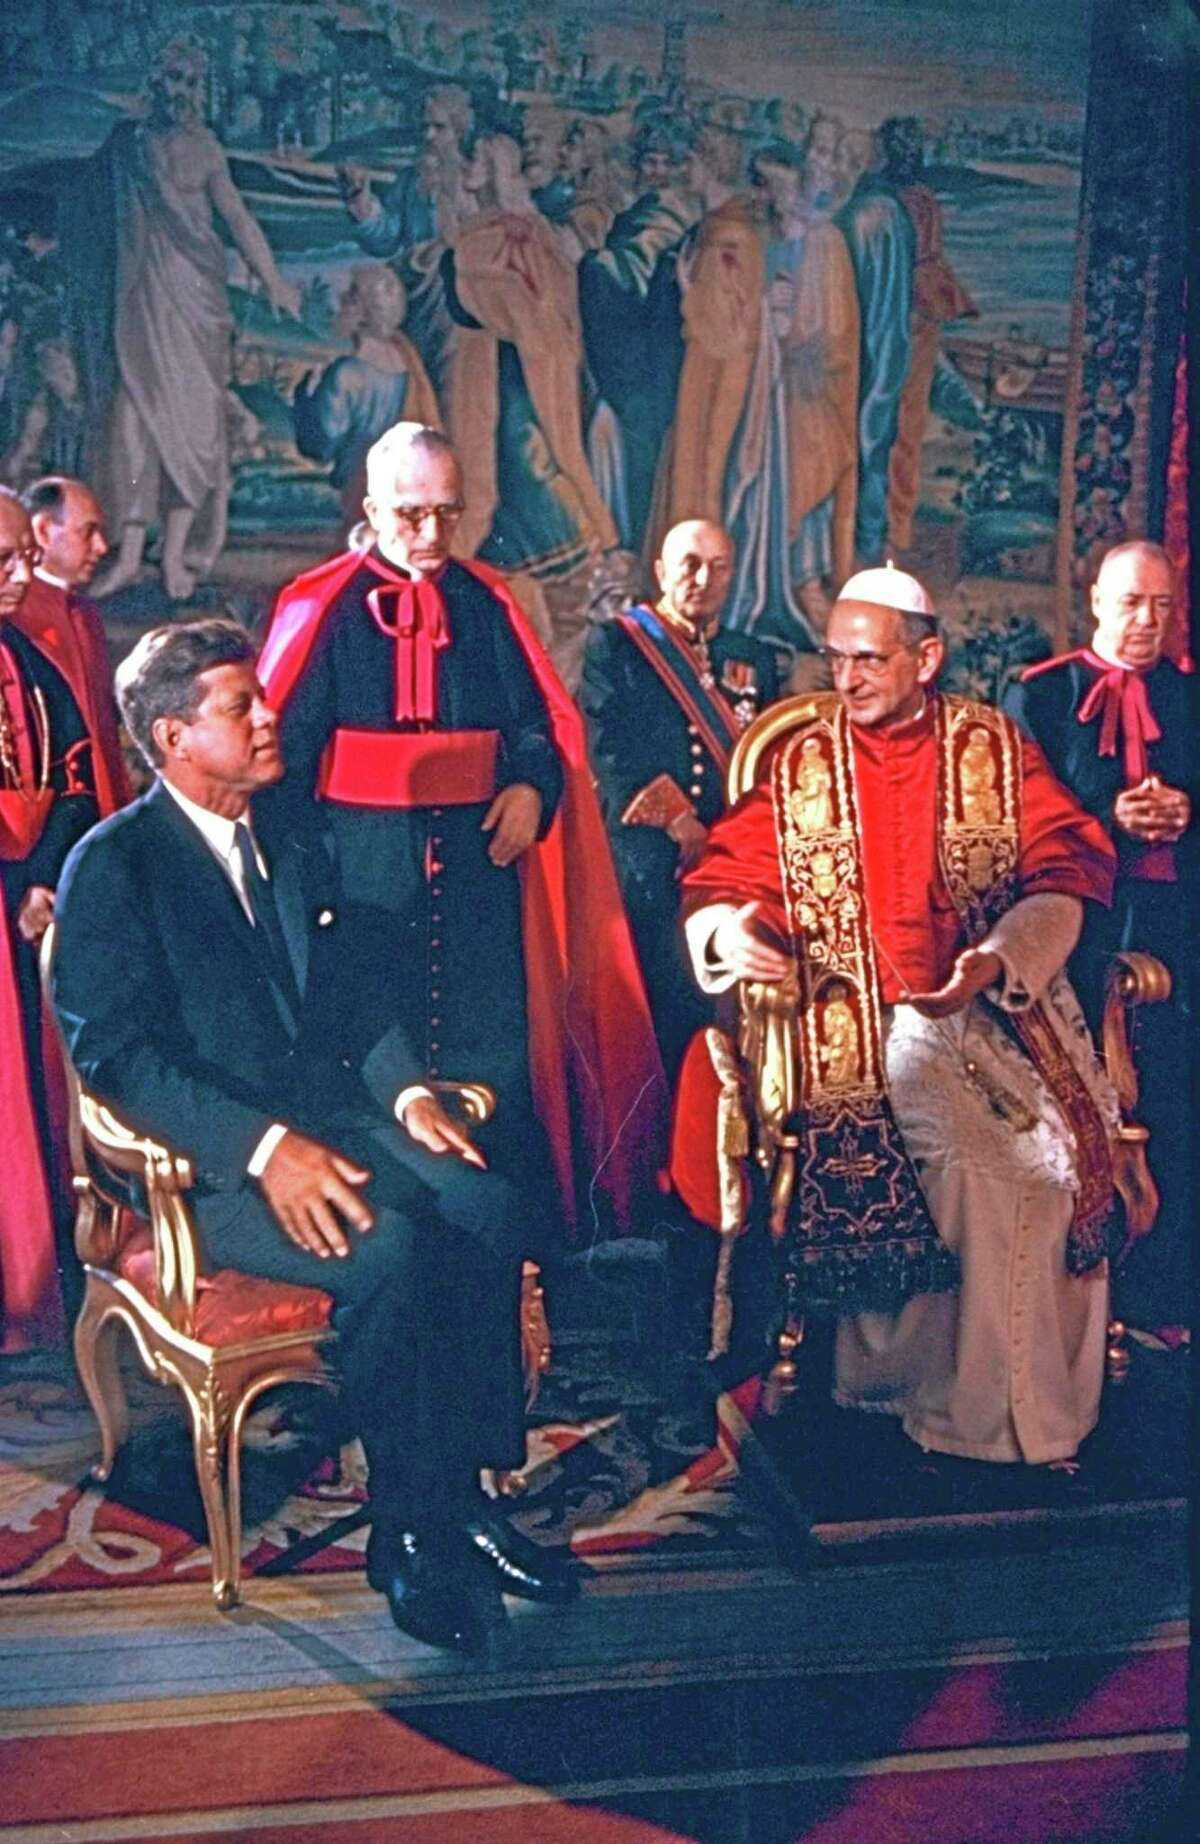 FILE - In this file photo, taken on July 3, 1963, President Kennedy is shown at the Vatican in an audience with Pope Paul VI. Pope Francis has approved a miracle credited to the intercession of Paul VI and set the date for the late pontiff's beatification for Oct. 19, the Vatican said Saturday. Francis had authorized the beatification, the last formal step before possible sainthood, a day earlier, the Vatican said. Paul VI, who reigned as pontiff from 1963-1978, made landmark progress in improving Catholics' relationship with other Christians. His papacy is also remembered by his decision, after years of study, to ban contraception for Catholics, in a 1968 encyclical,